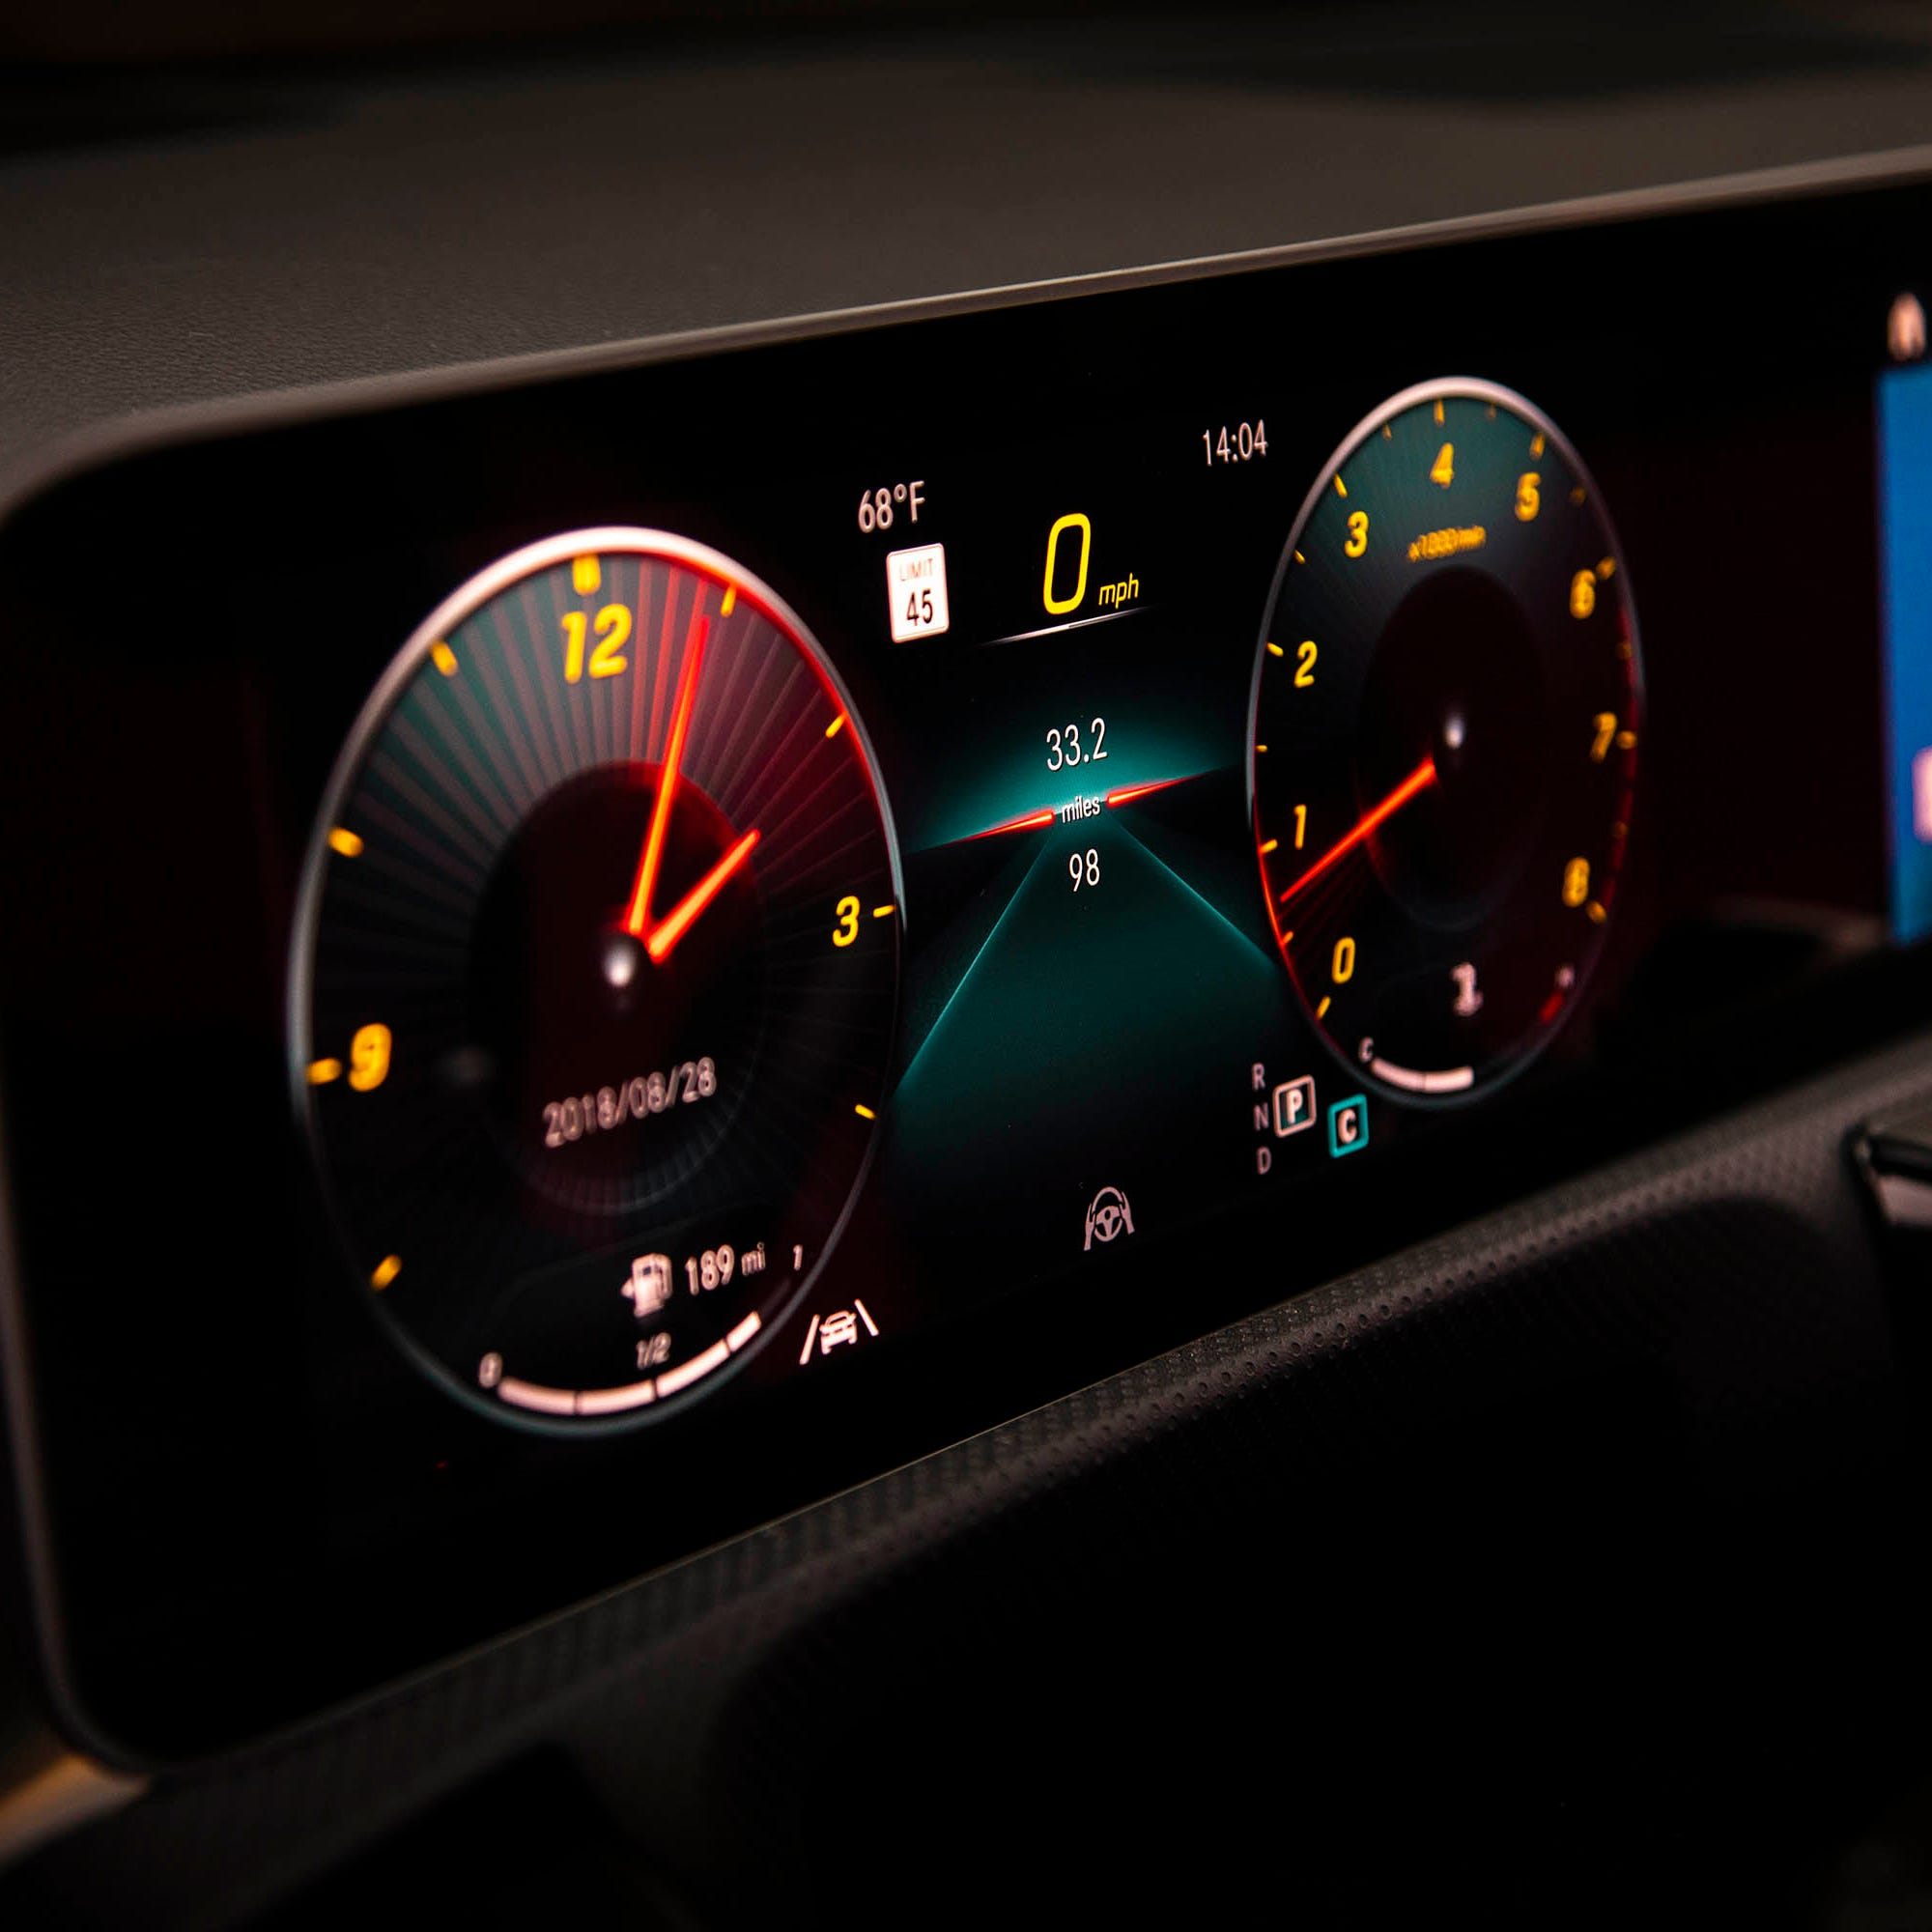 This undated photo provided by Mercedes-Benz shows an LCD screen in the 2019 A 220 4Matic Sedan. The screen is an example of a trend: digital gauges replacing analog ones in vehicle instrument panels. Digital gauges are customizable and can display more information than traditional gauges. (Courtesy of Mercedes-Benz via AP)